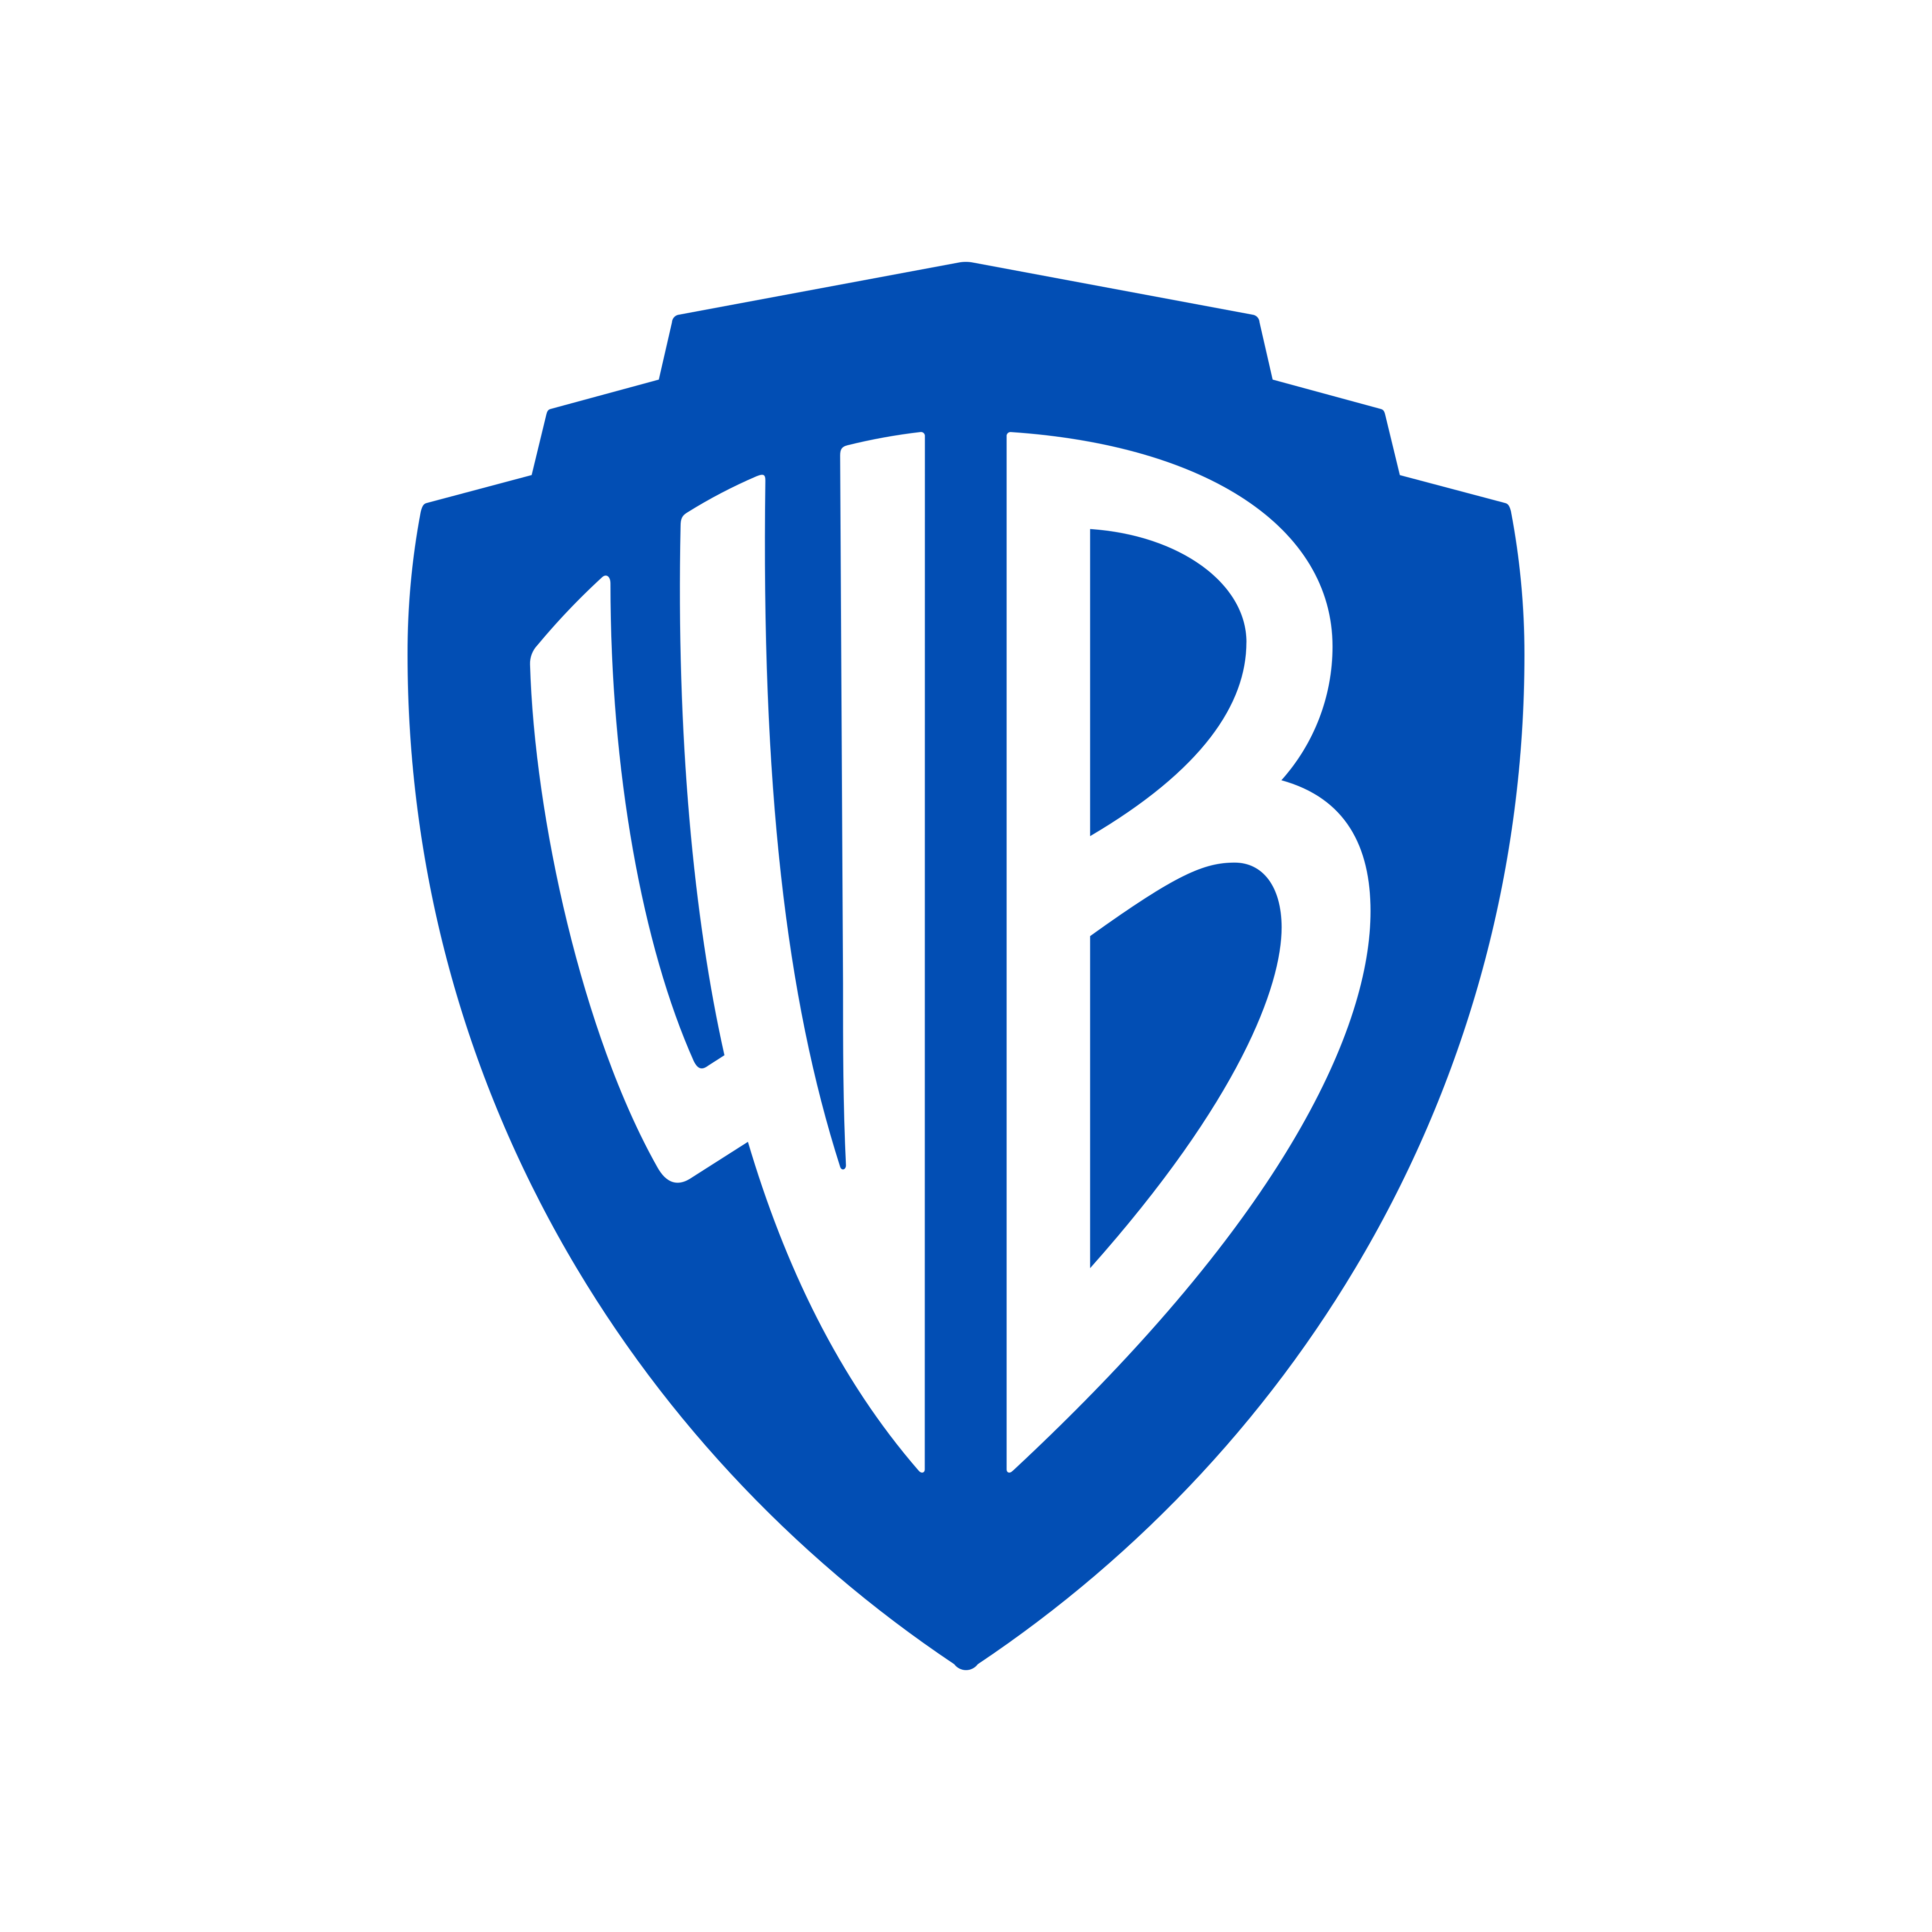 warner bros logo 0 - Warner Bros Logo